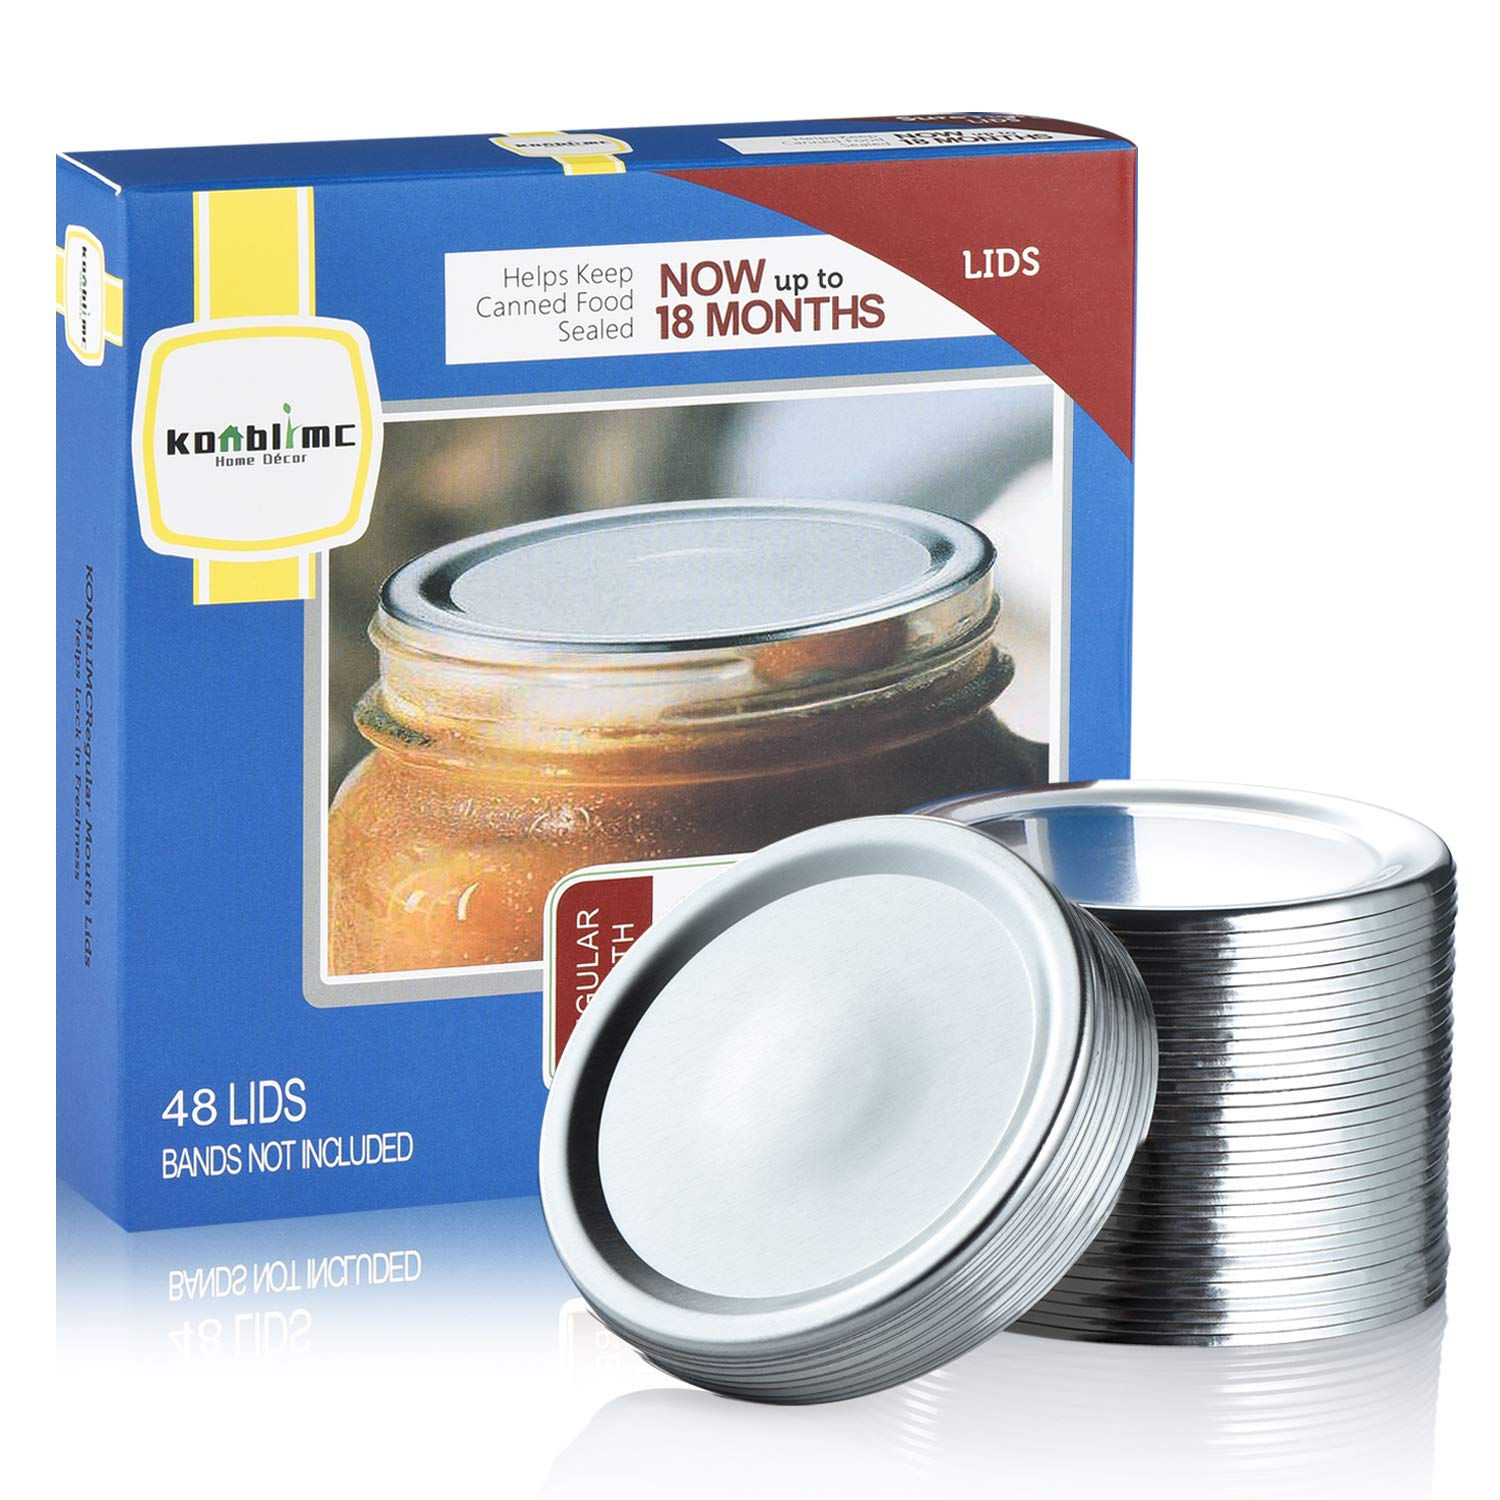 Kerr Regular Mouth Canning Jar Bands and Lids Unused . 4 Bands and 13 Lids